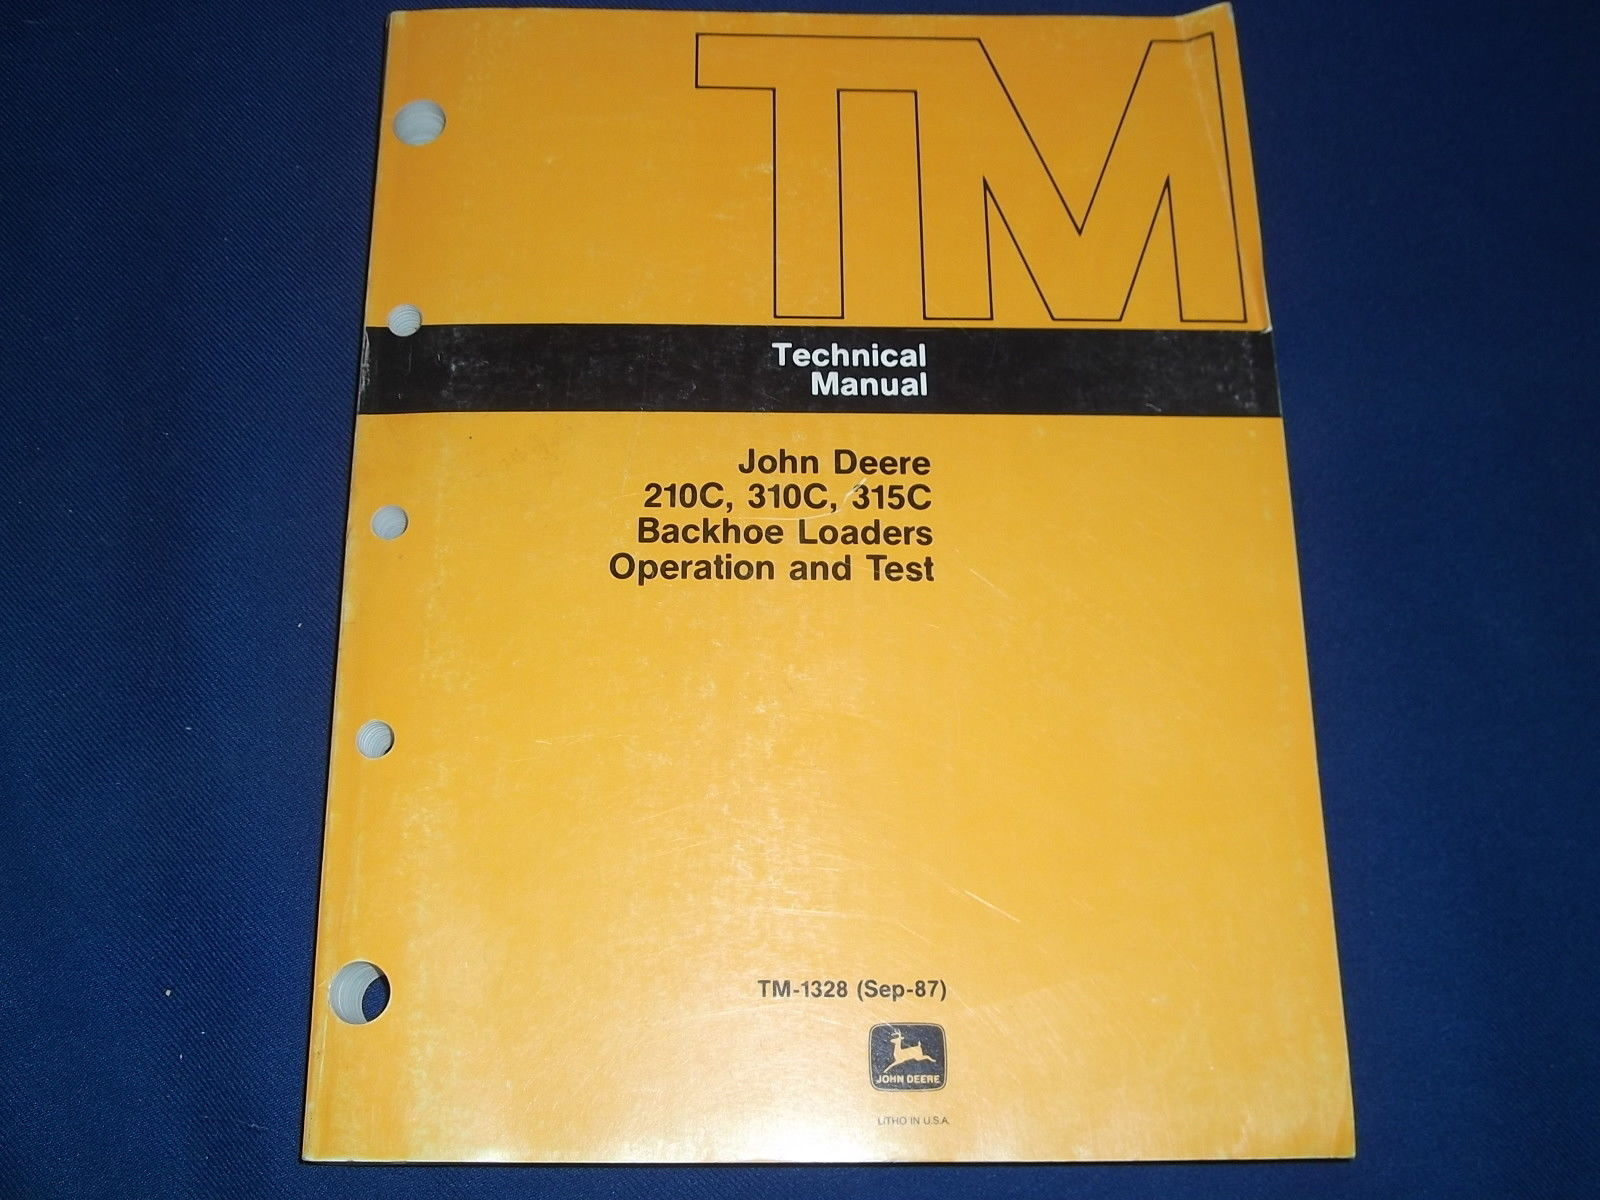 Jd 2130 Manual Repair Ebook Also Case 446 Tractor Wiring Diagram On Exmark Electrical Array John Deere Manuales De Taller Service Manuals Rh Autorepairmanuales Wixsite Com